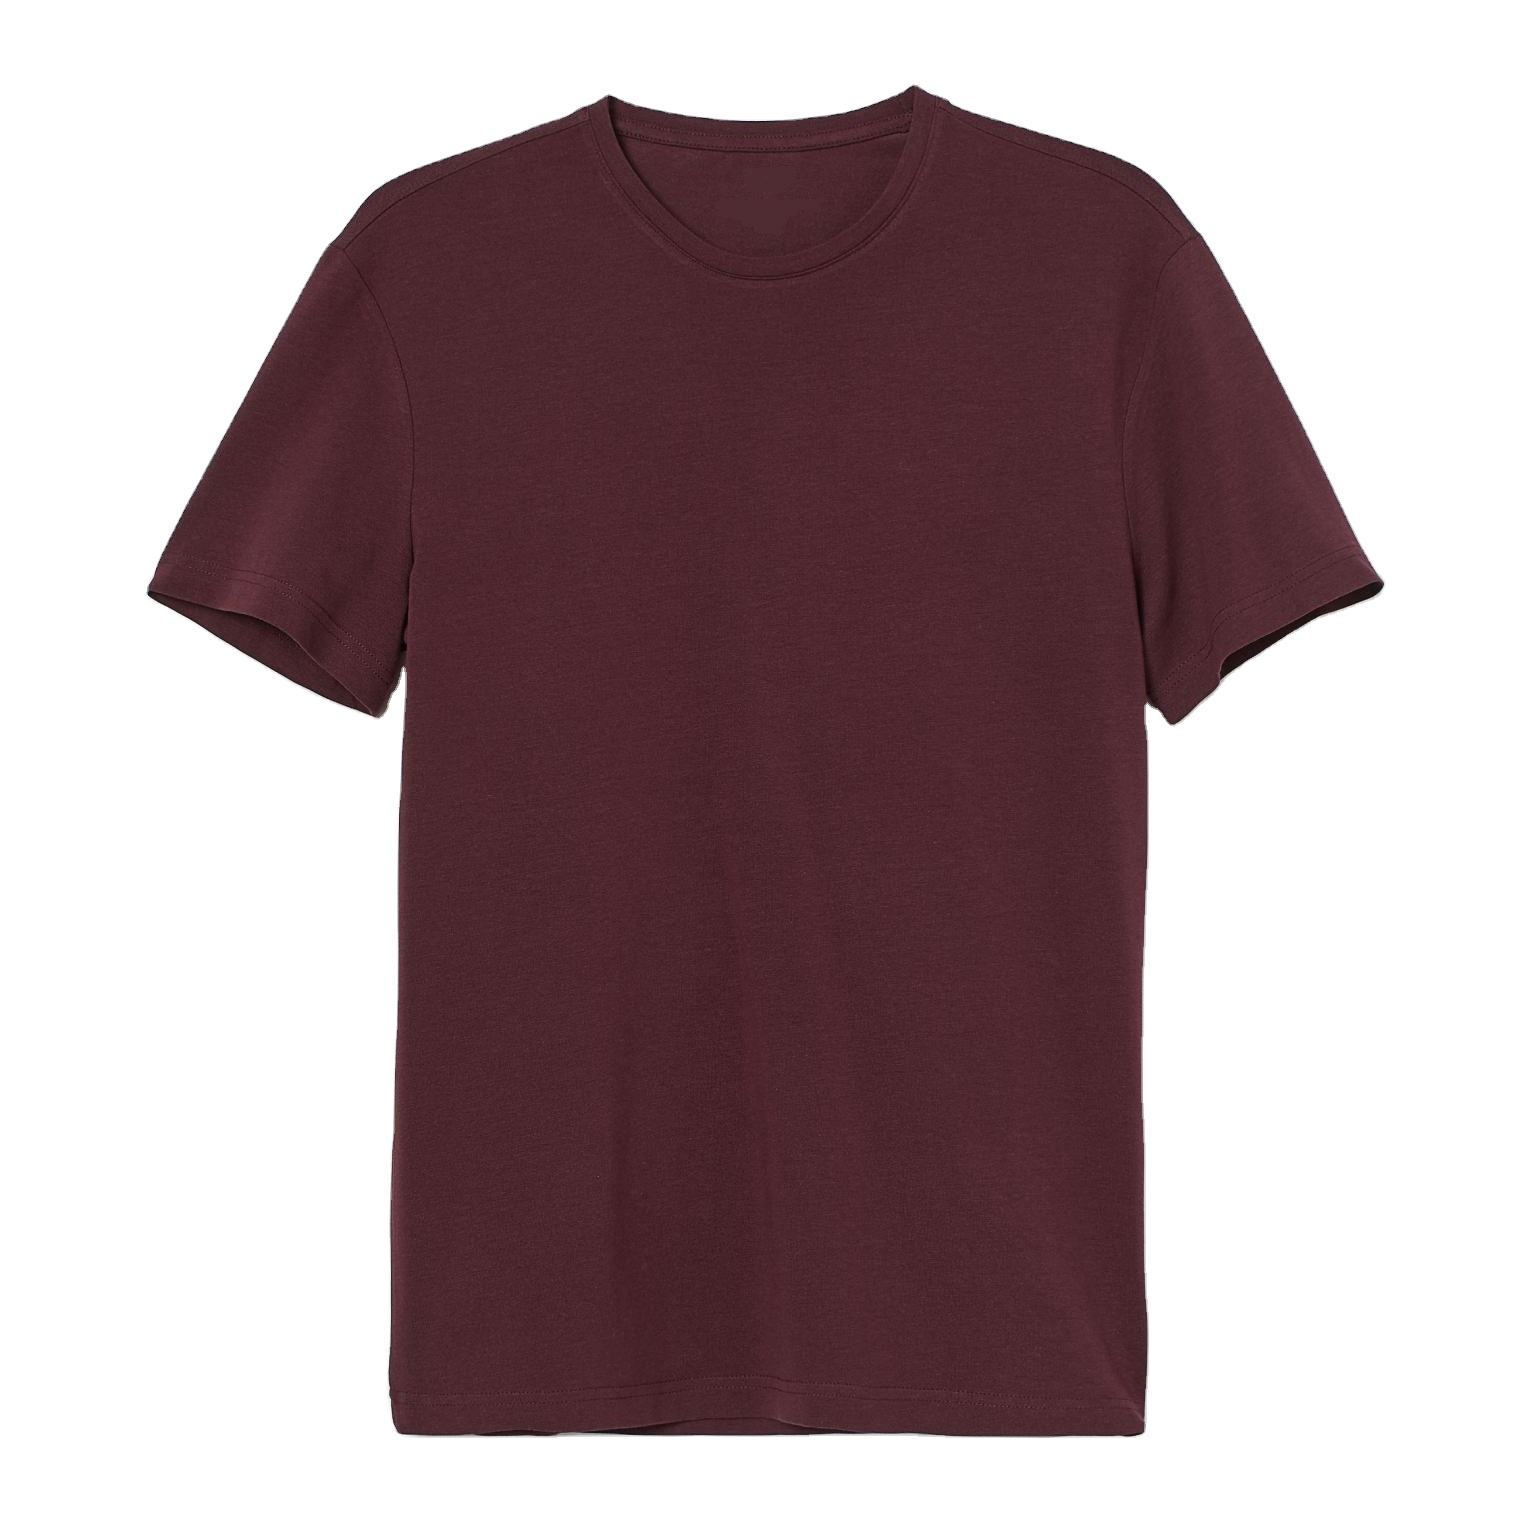 Round Neck Men Wholesale Blank T shirts At Factory Price OEM Plain T-shirt High Quality Tshirt From Bangladesh